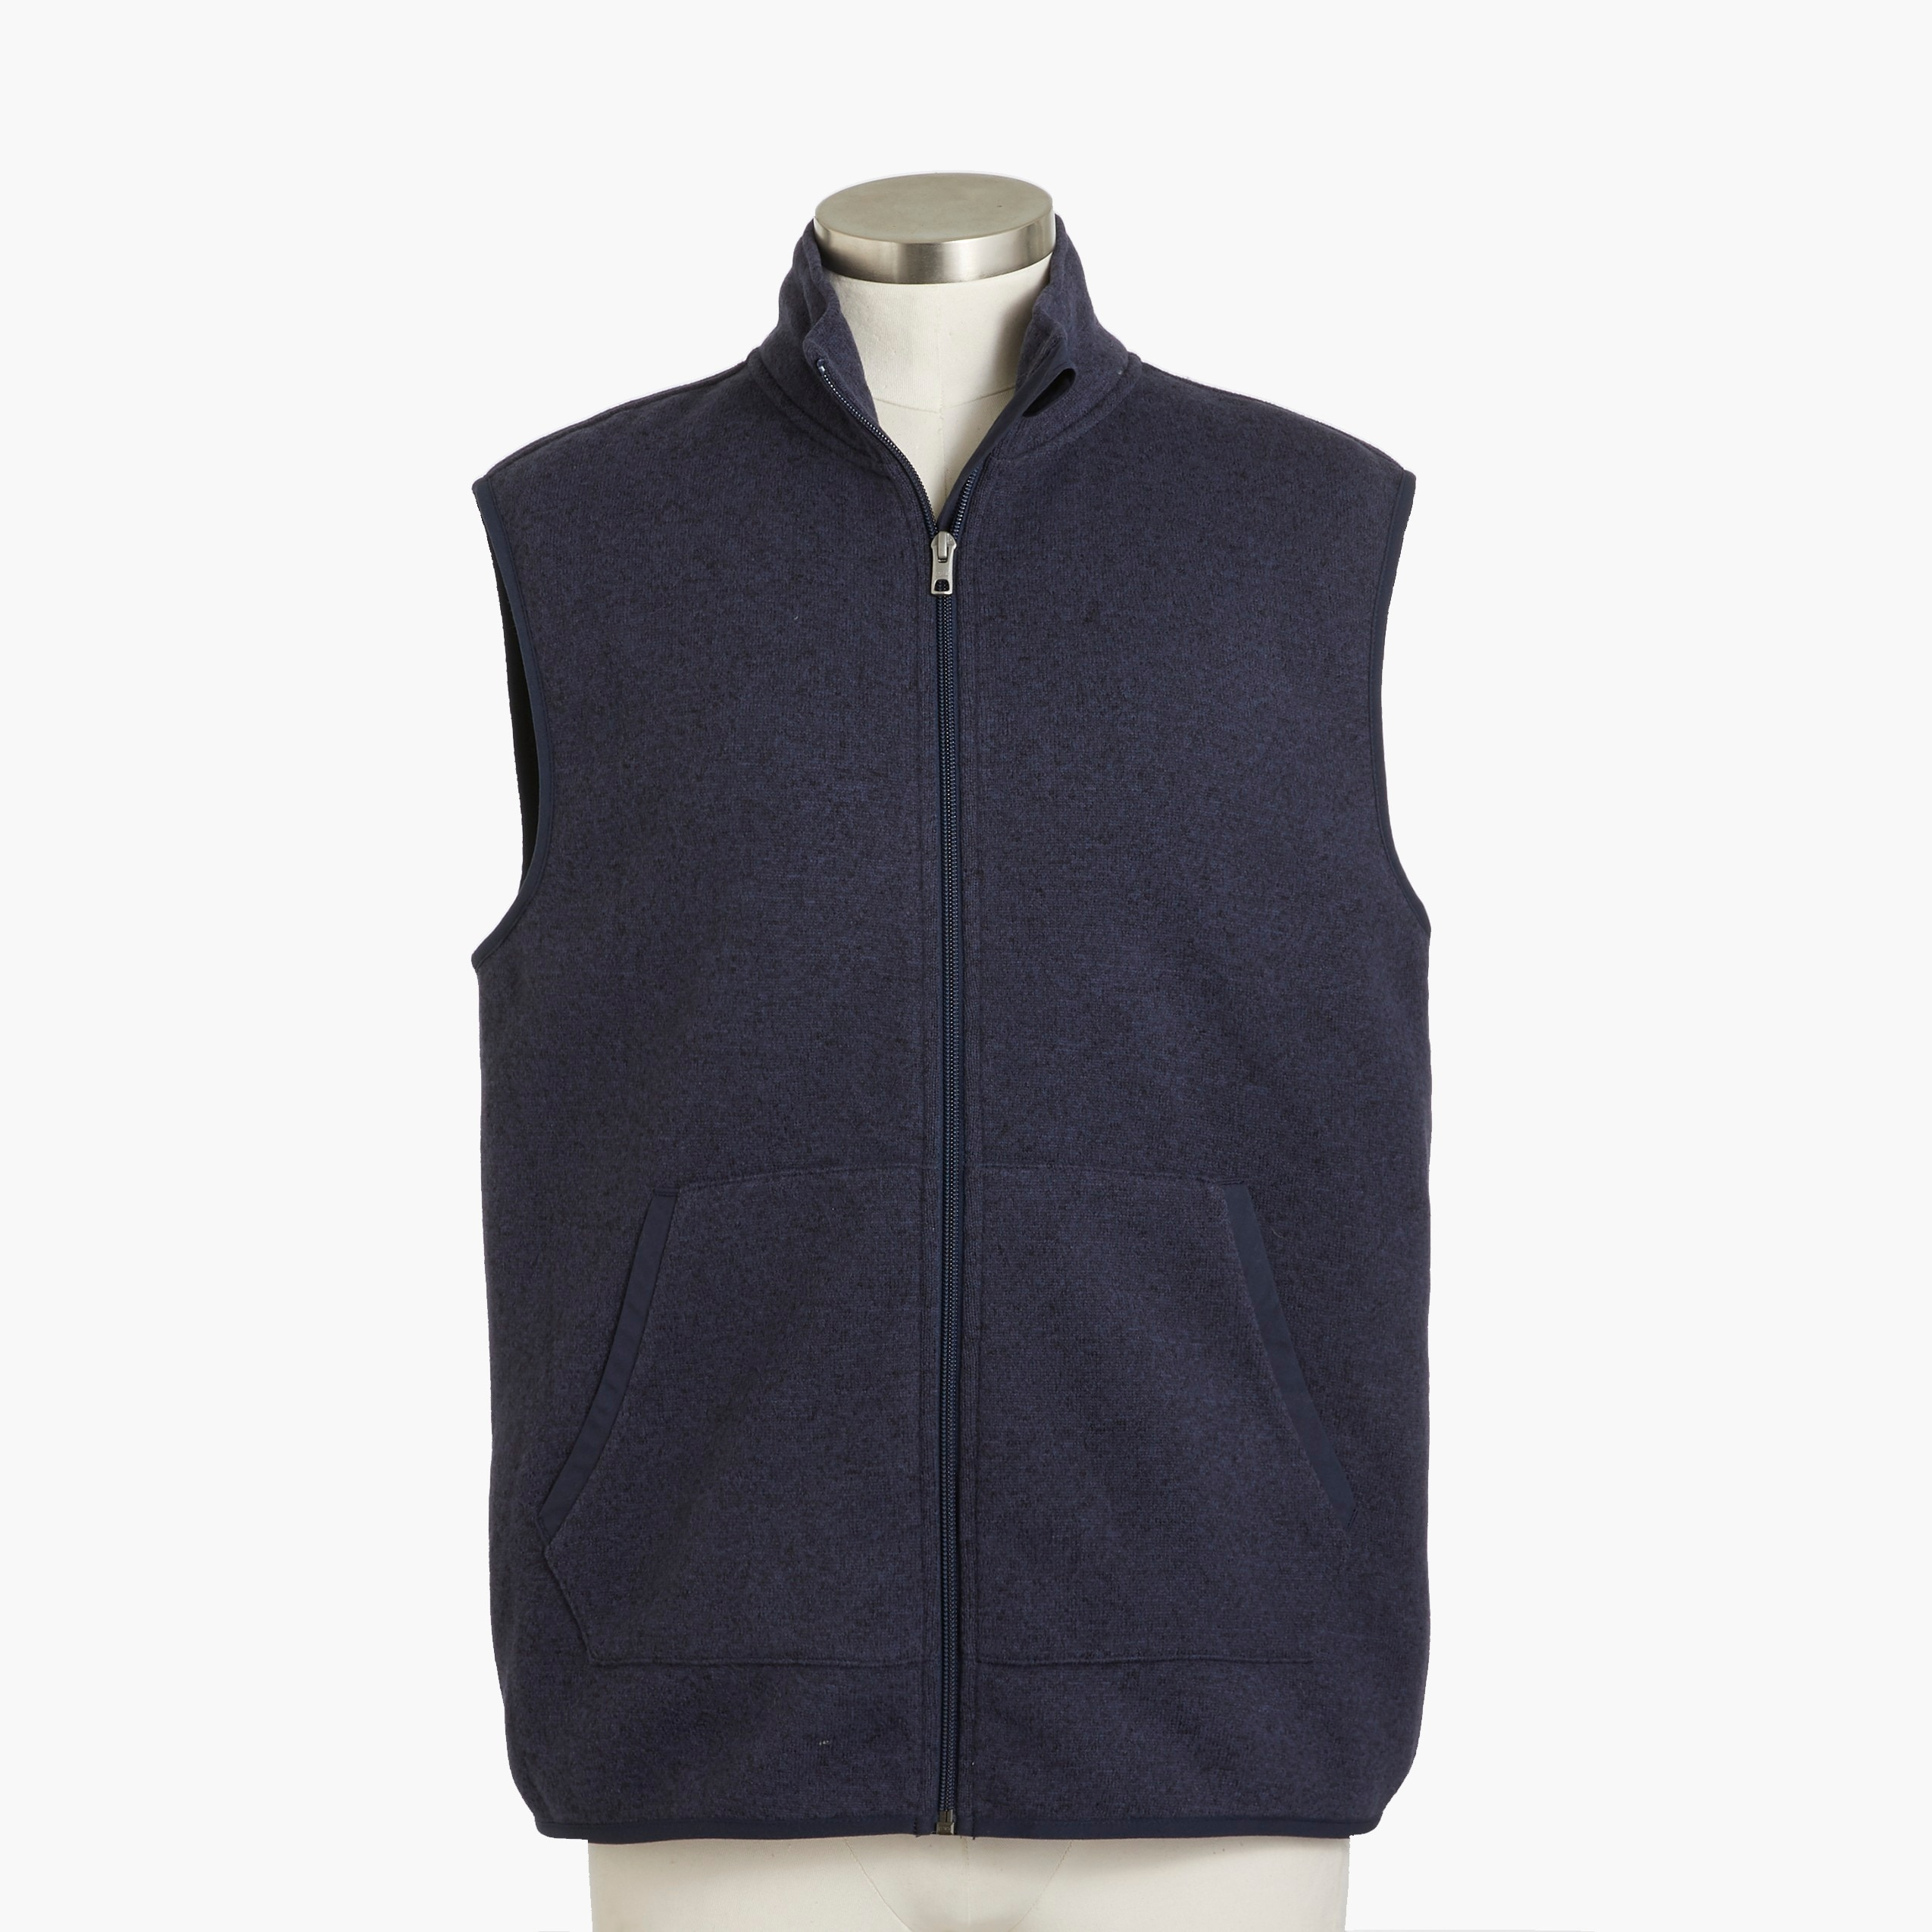 factory mens Sweater fleece vest